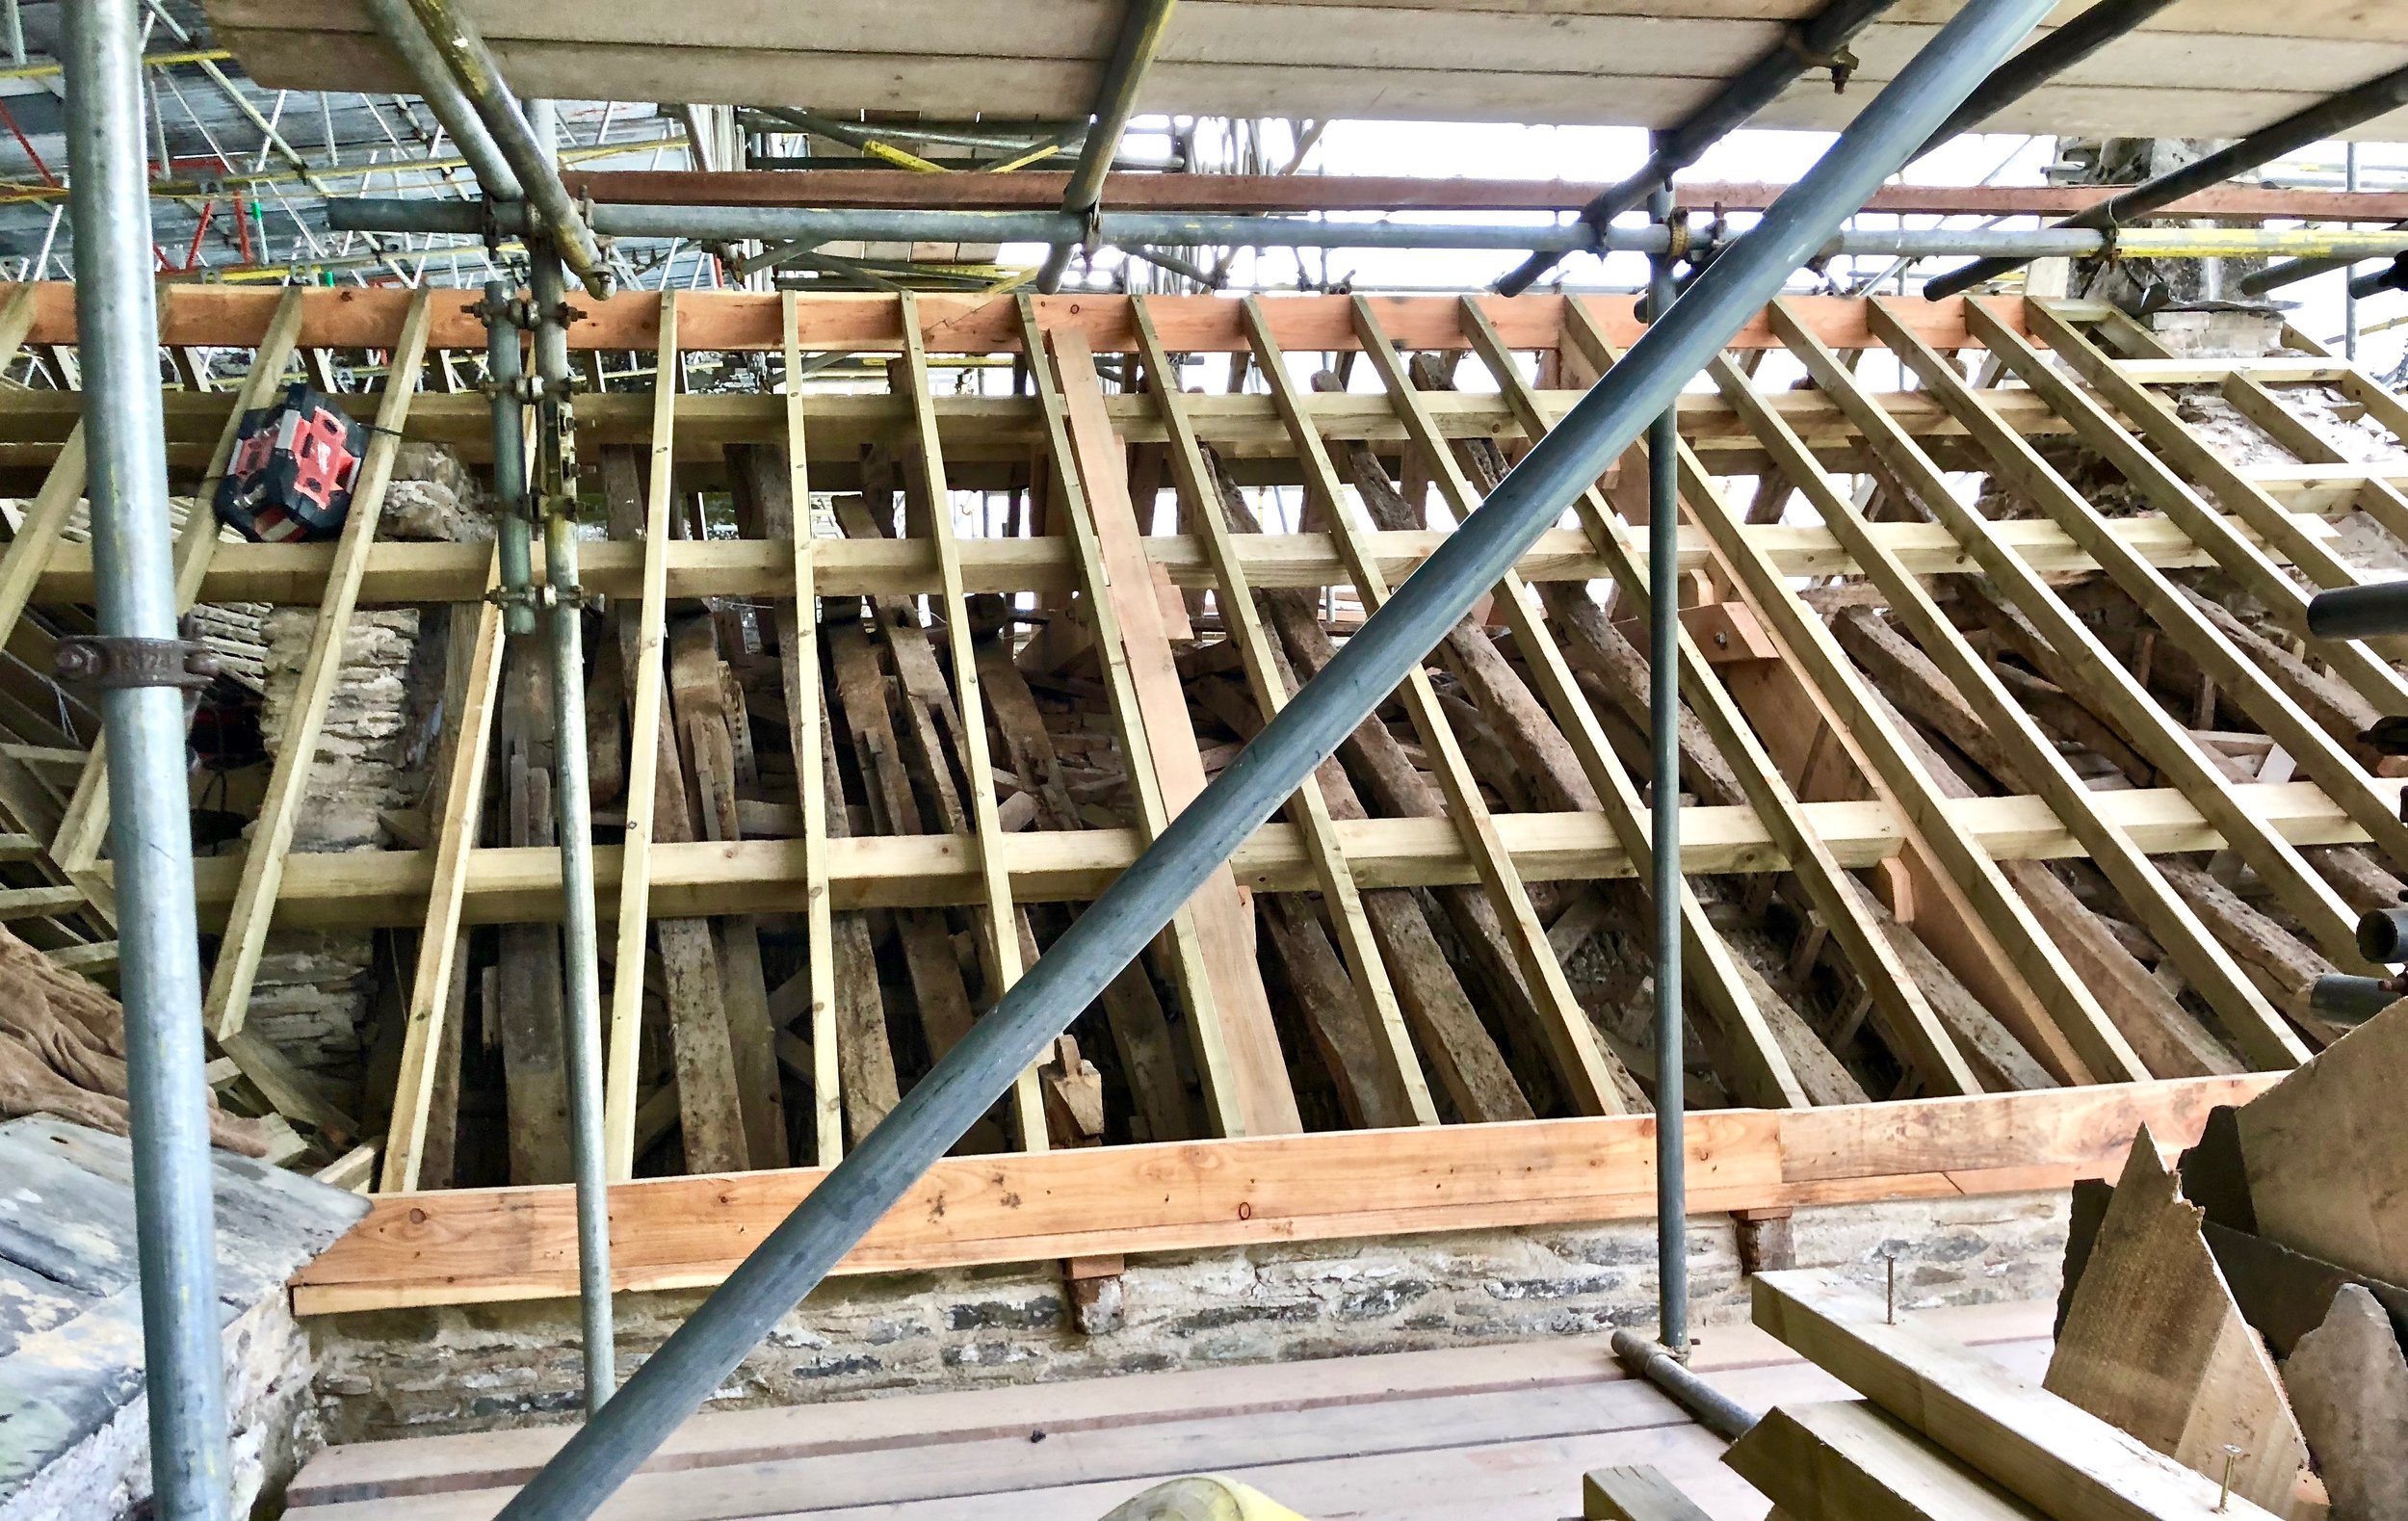 The weak vitorian supersrtucture has been removed and replaced with a much stronger framework. The medieval beams remain underneath and help to keep the ceiling up